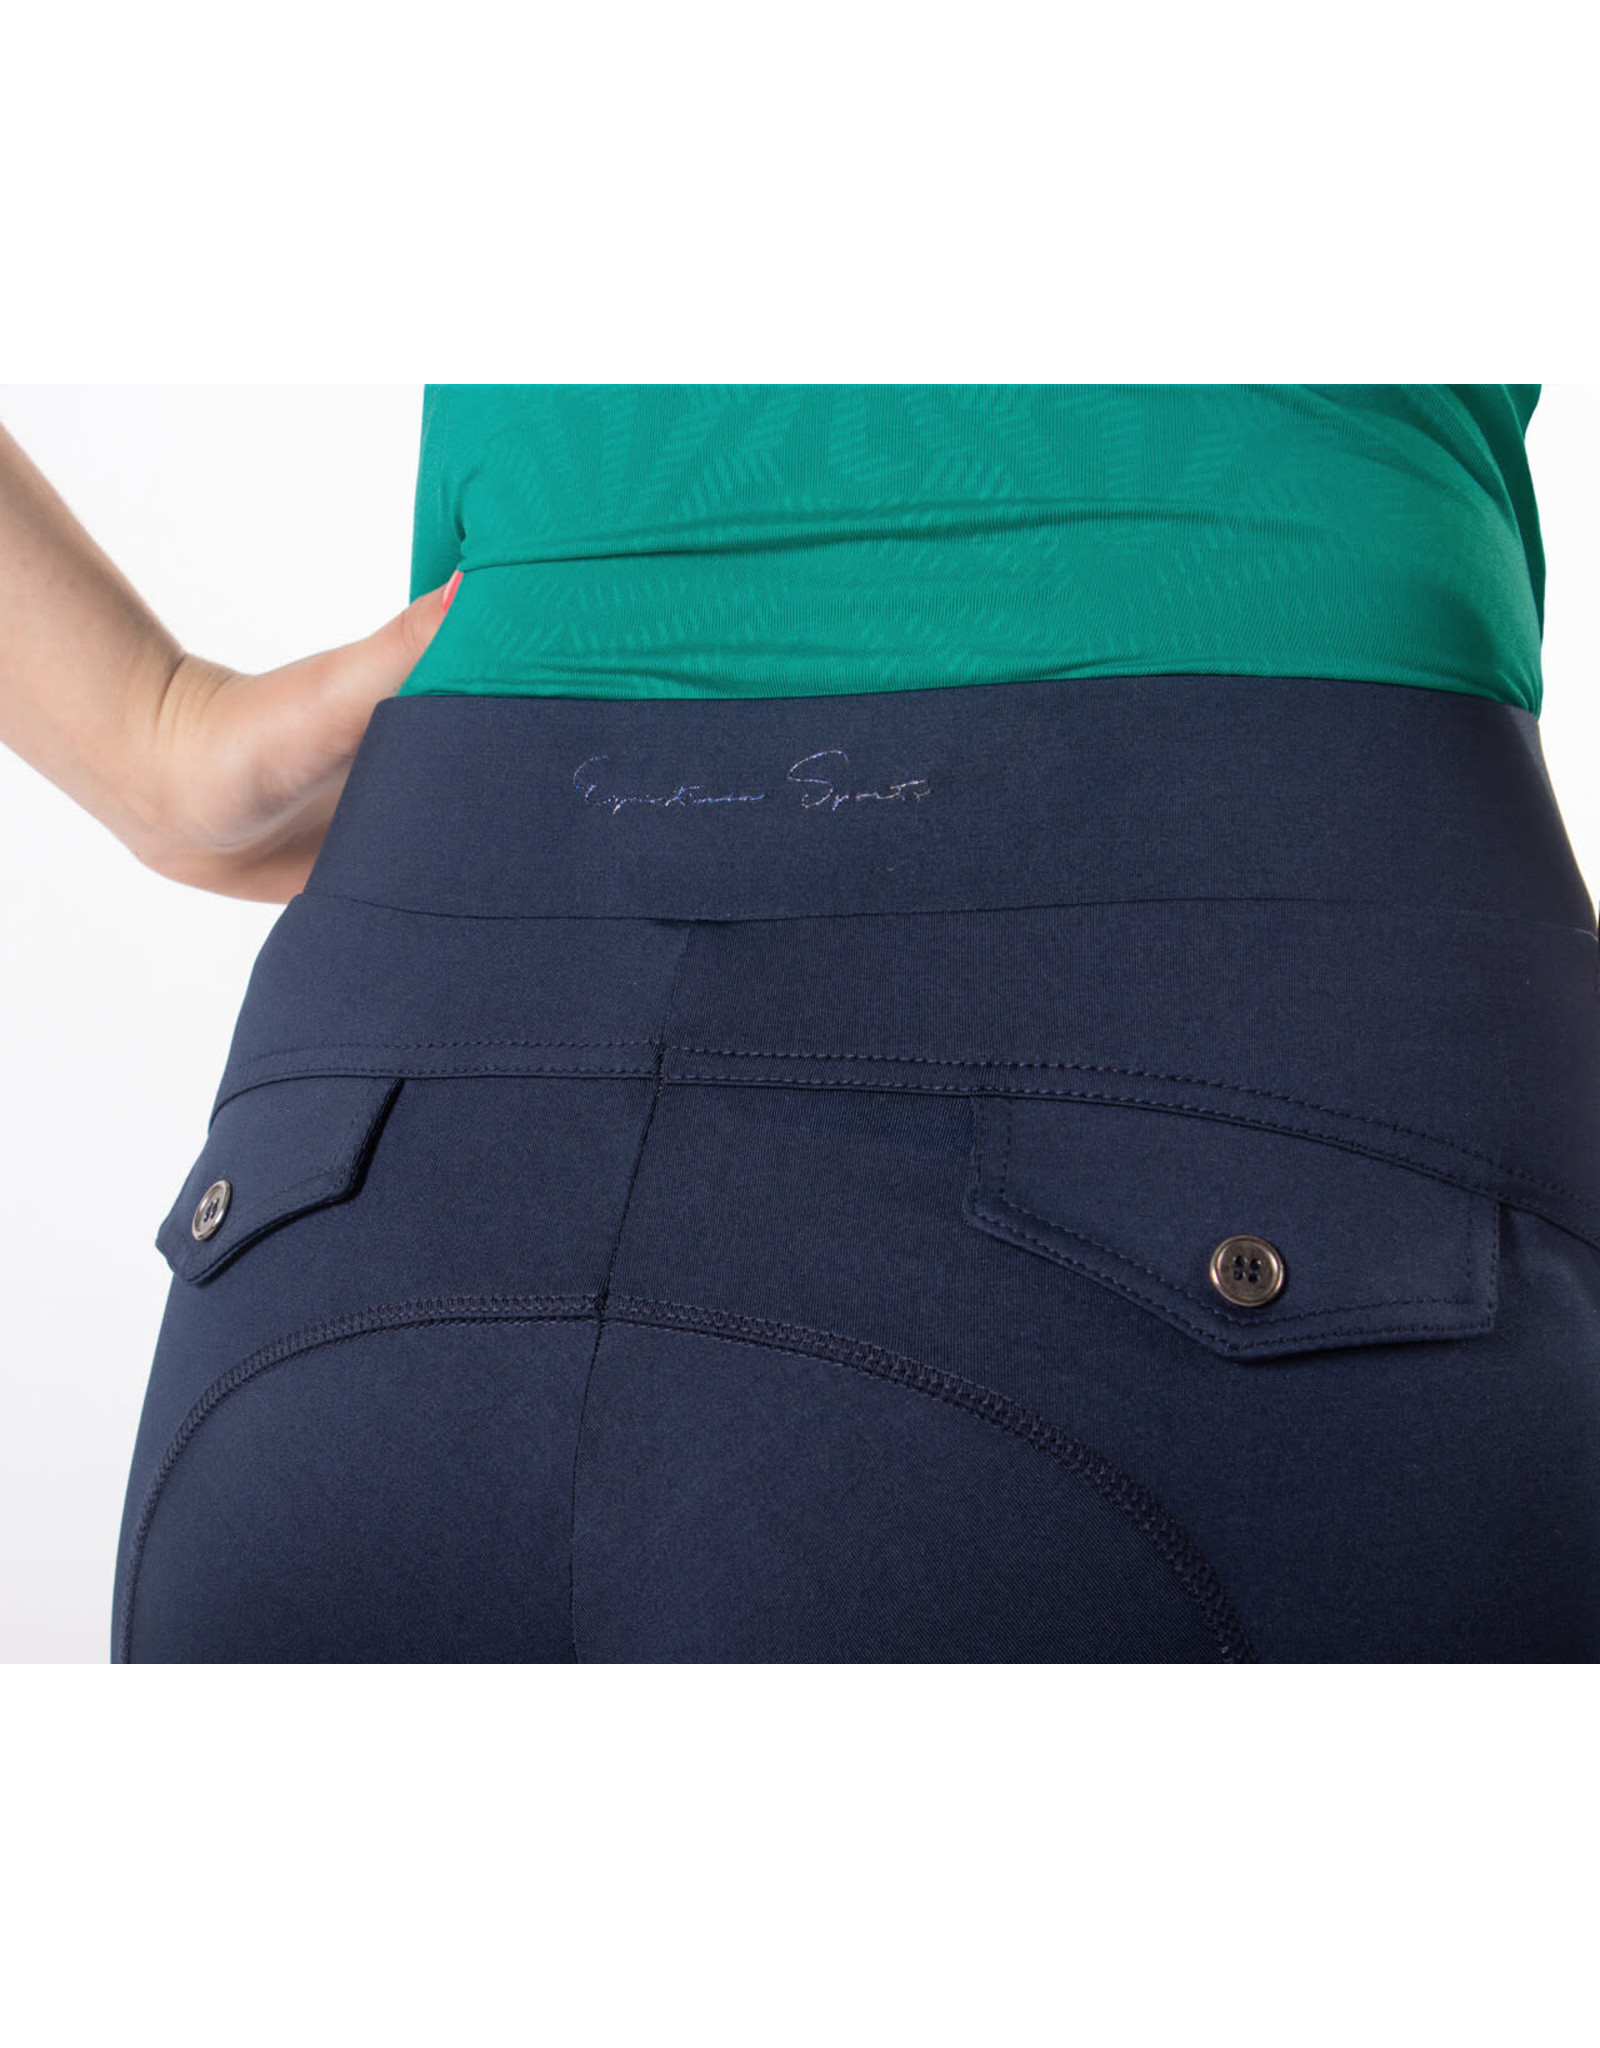 QHP QHP Rijbroek pull-on Phylicia been grip Navy